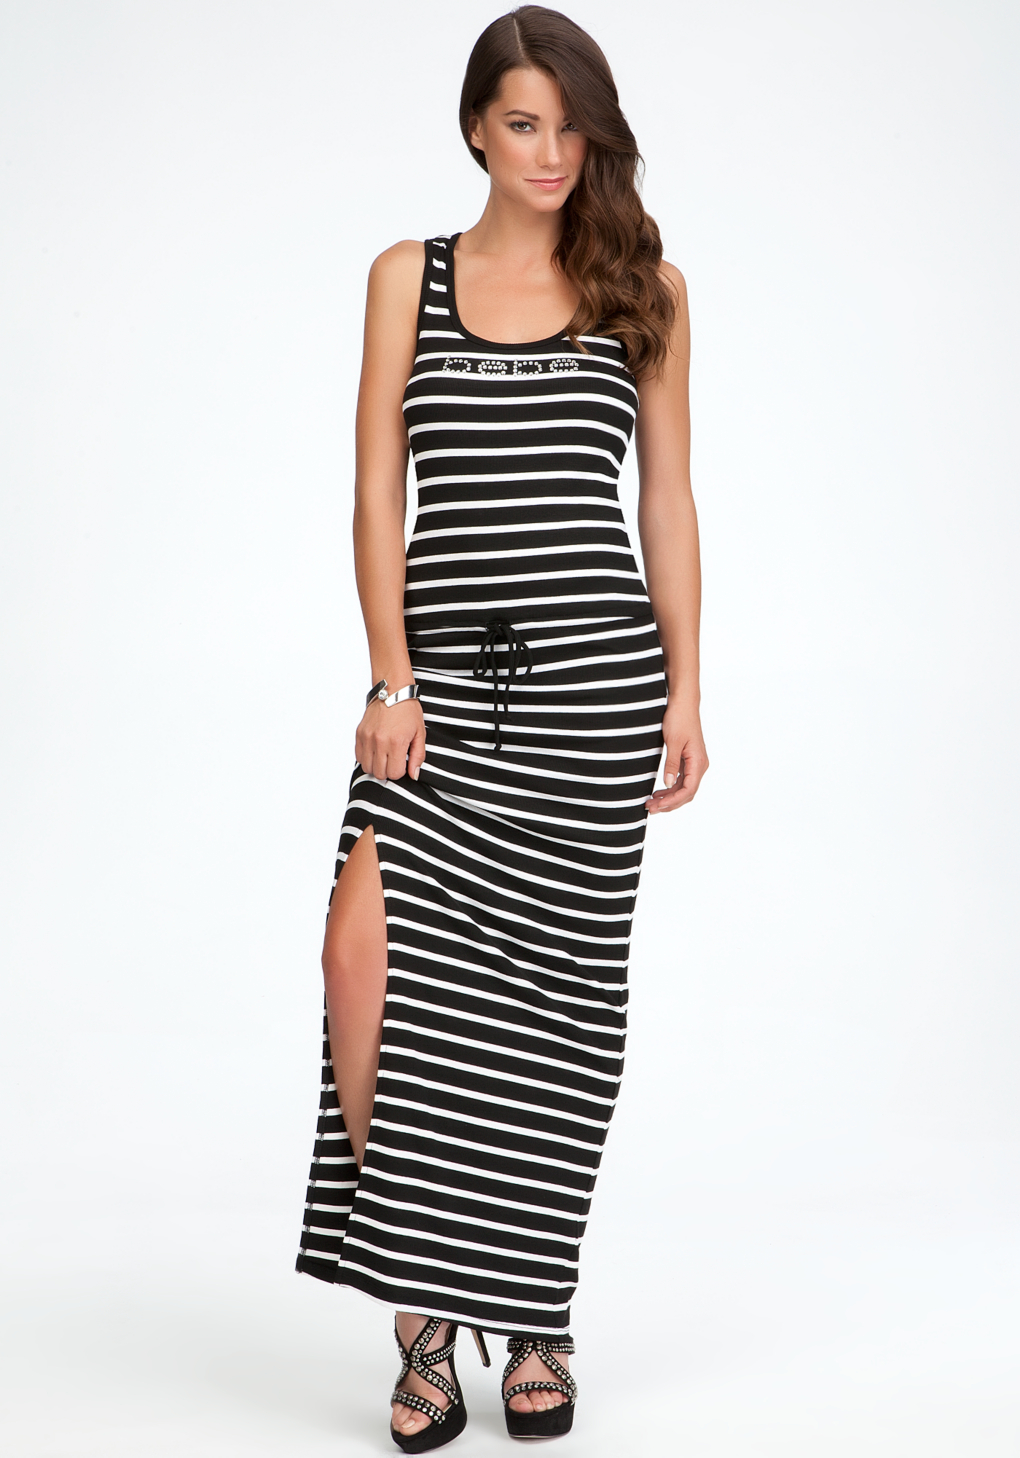 Bebe Logo Stripe Racerback Dress In Black Lyst